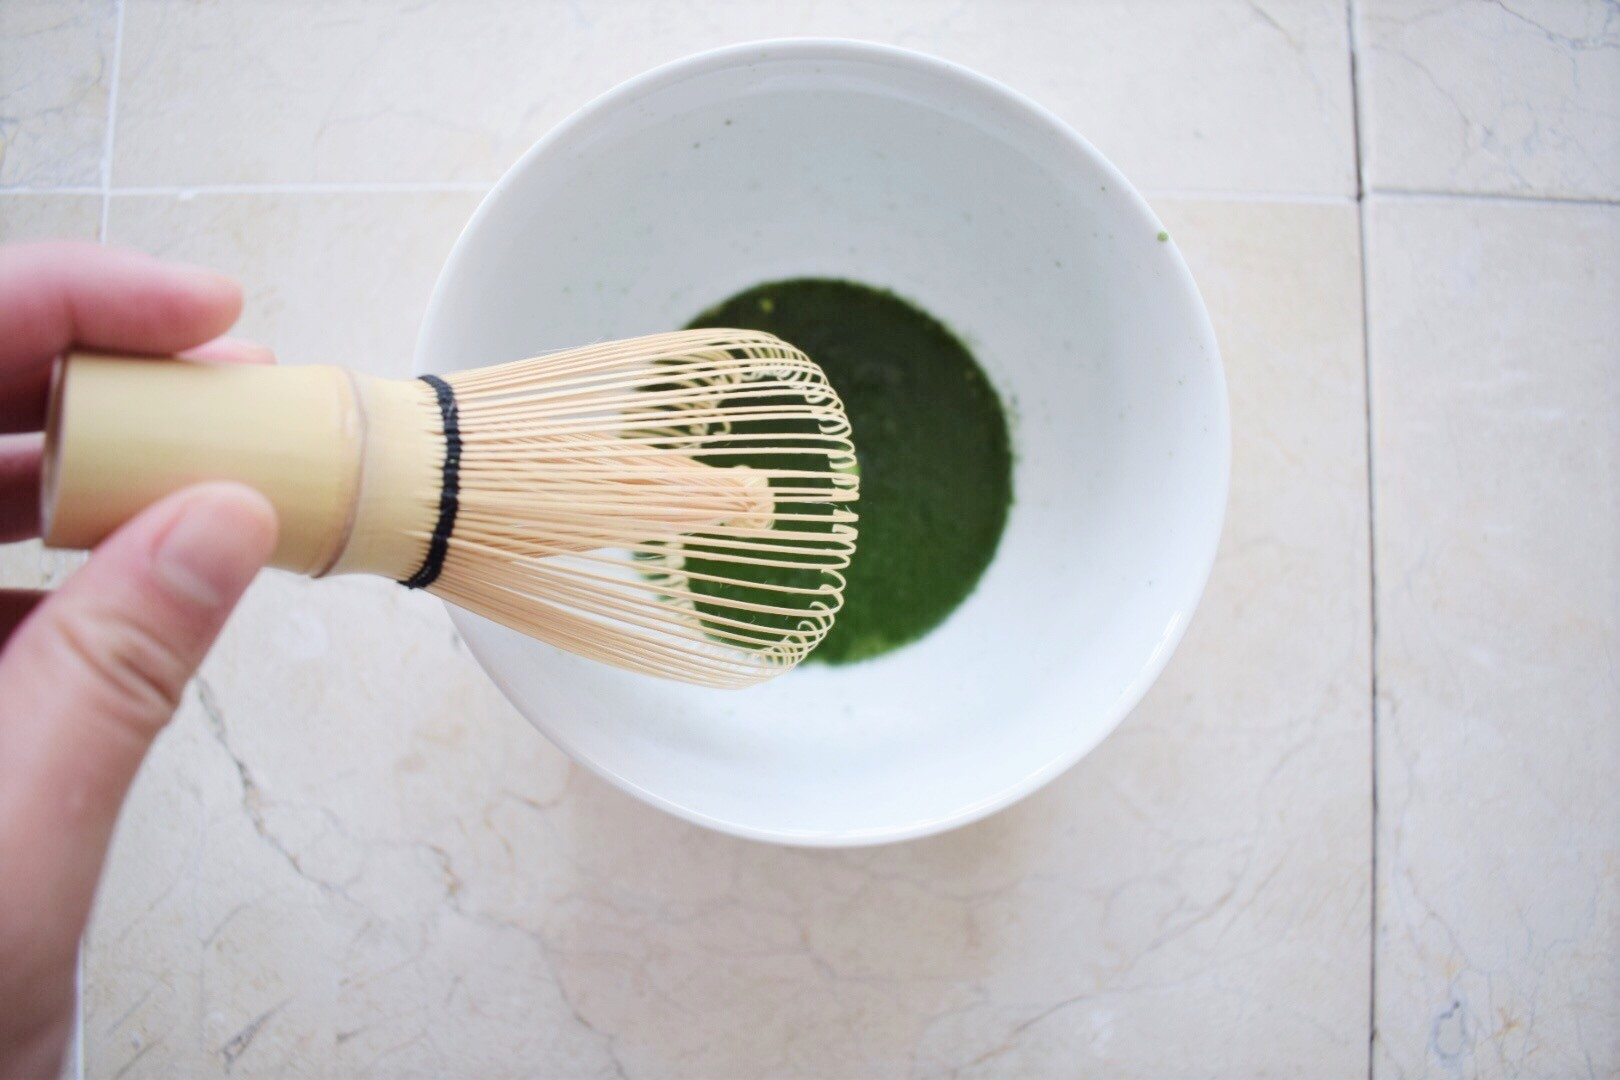 DIY Matcha Latte Drink At Home 3.jpg